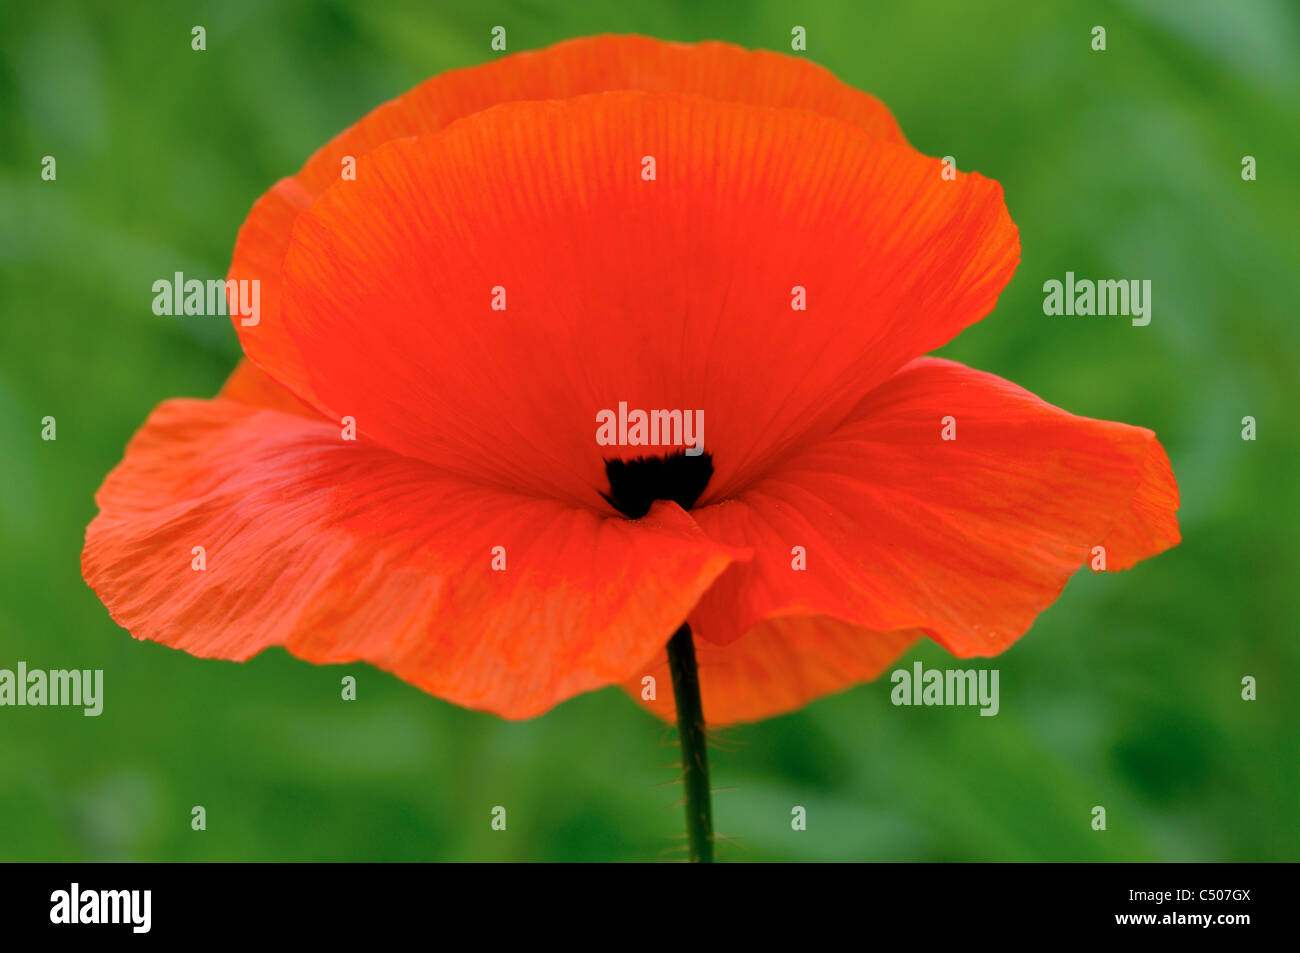 Flower of red poppy with green background. - Stock Image